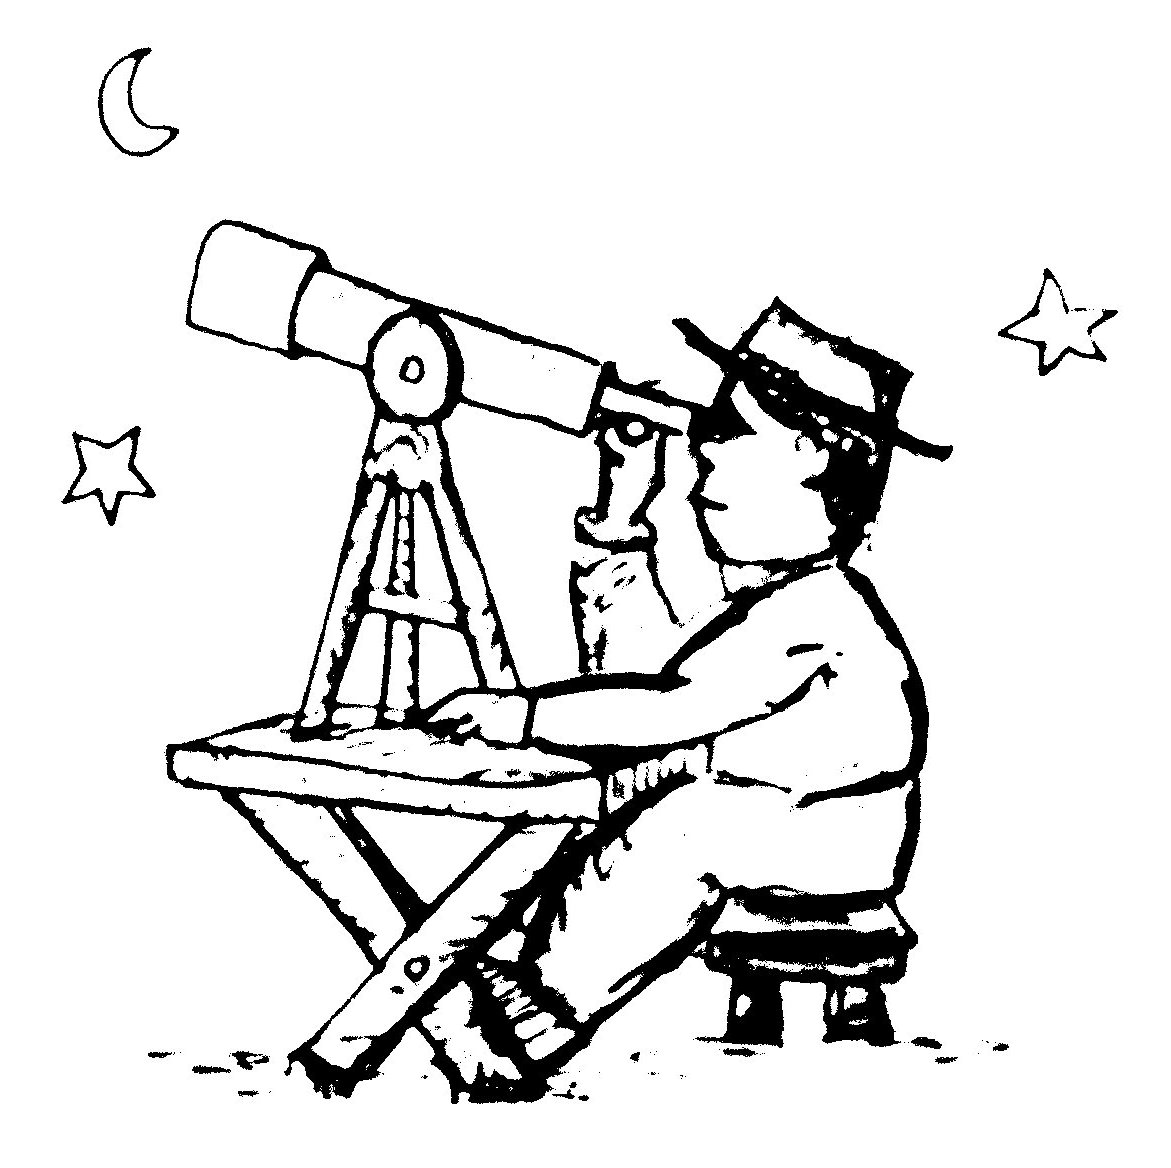 astronomy clipart black and white - photo #18